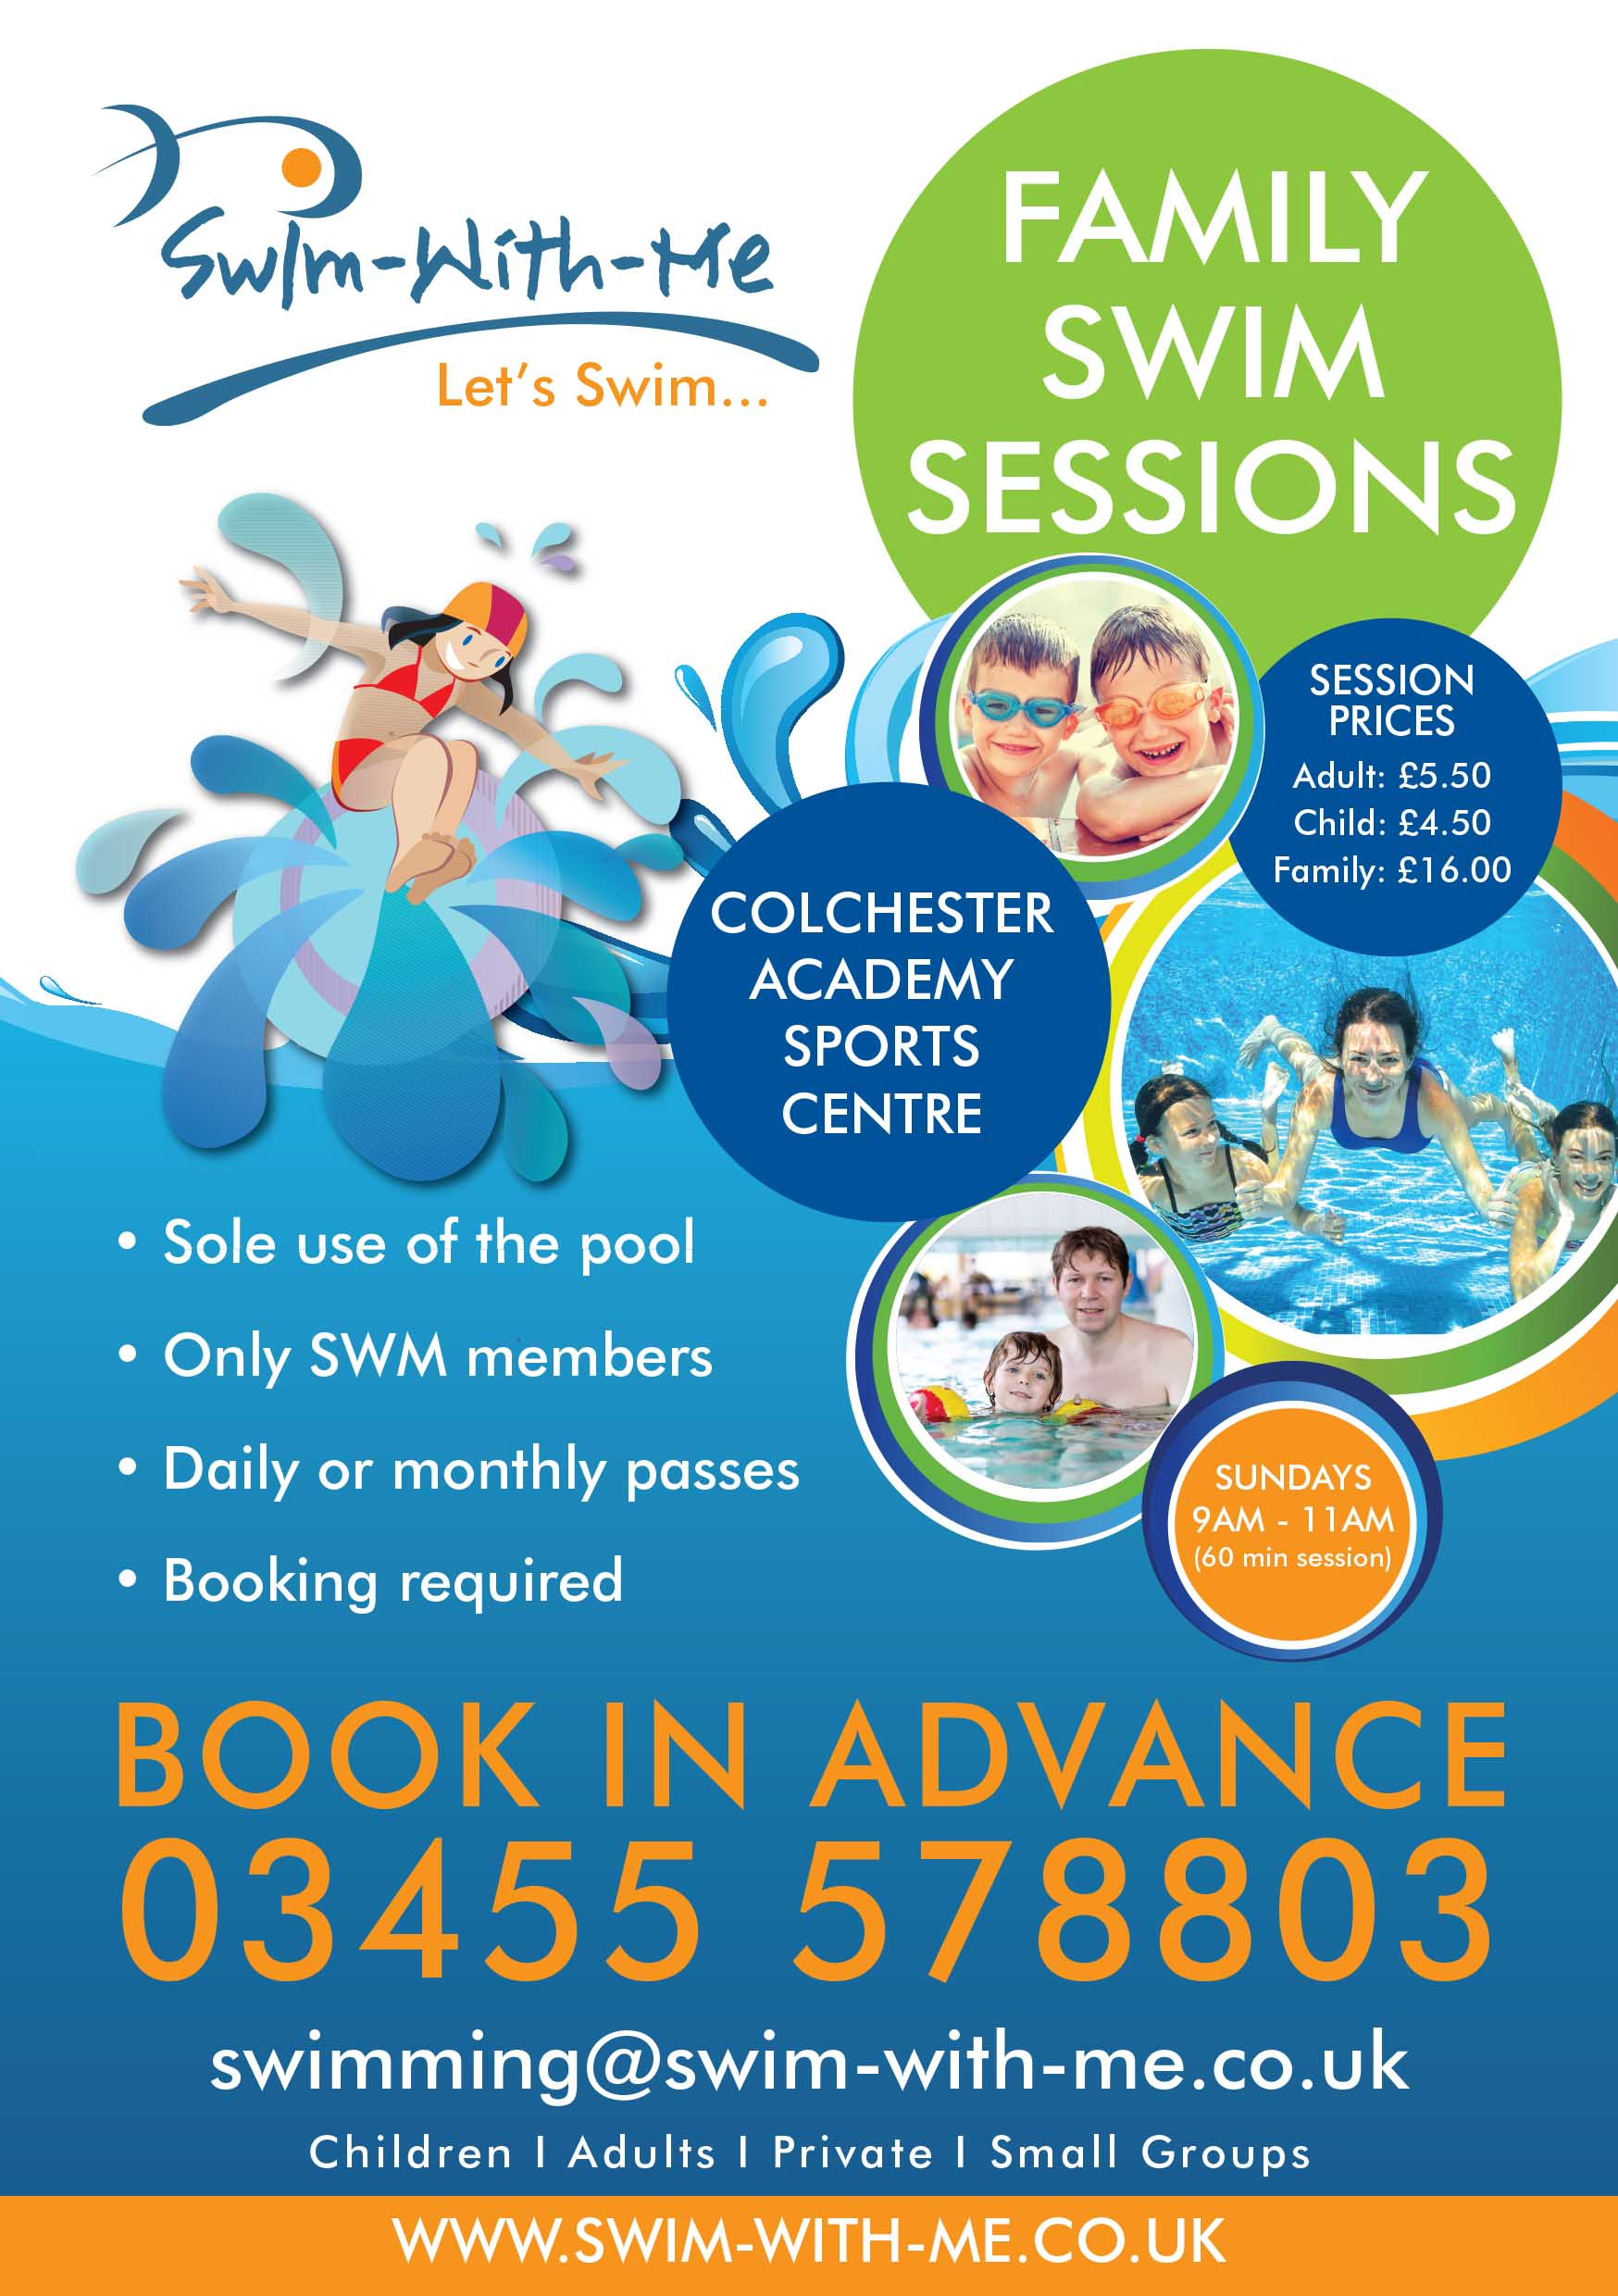 Family Swim Sessions @ Colchester Academy